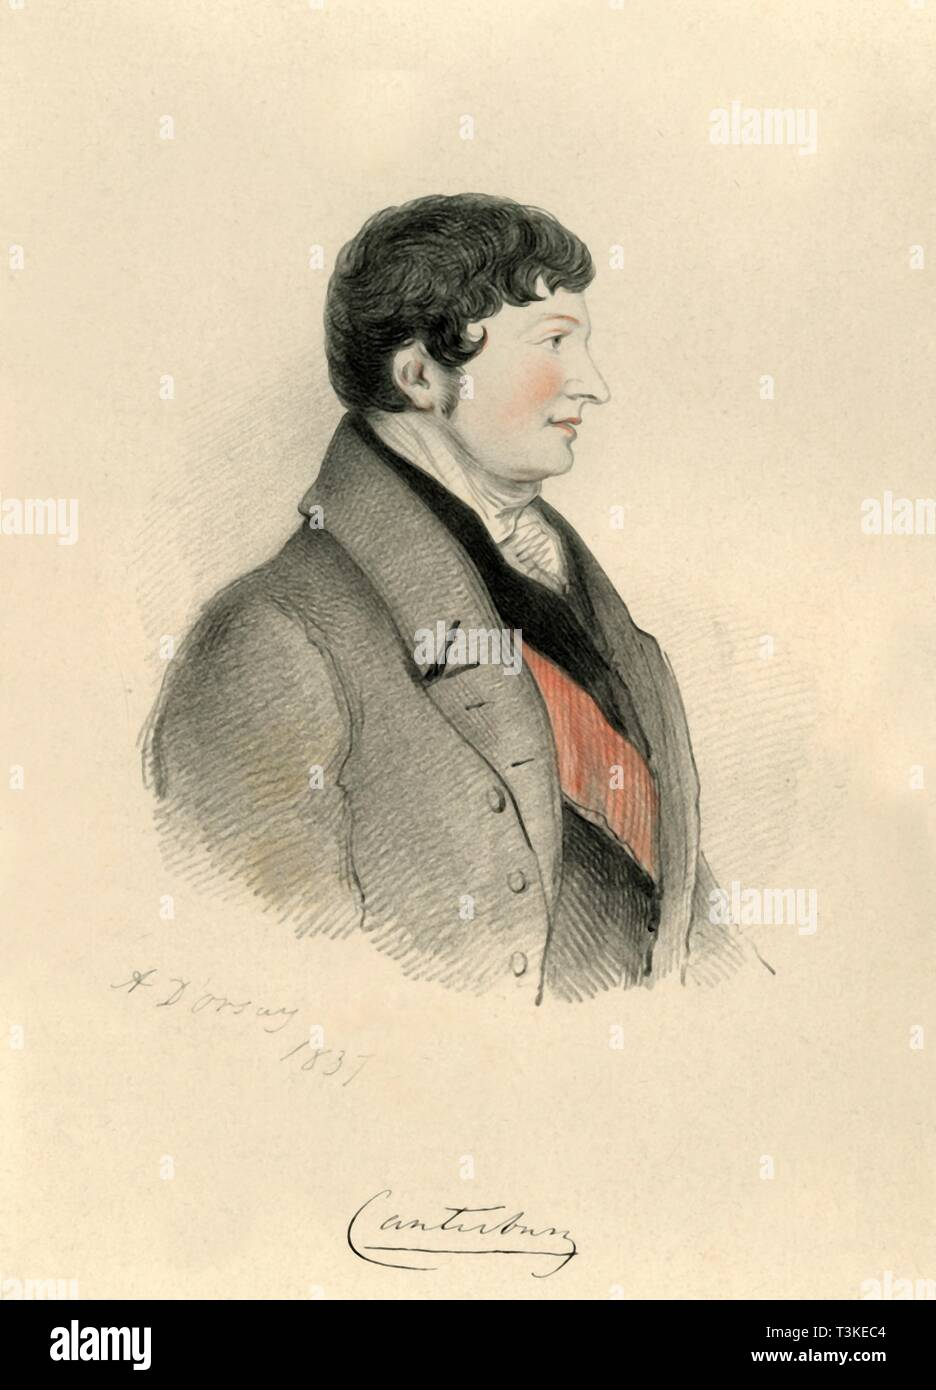 Charles Manners Sutton, 1st Viscount Canterbury, 1837. Creator: Alfred d'Orsay. - Stock Image